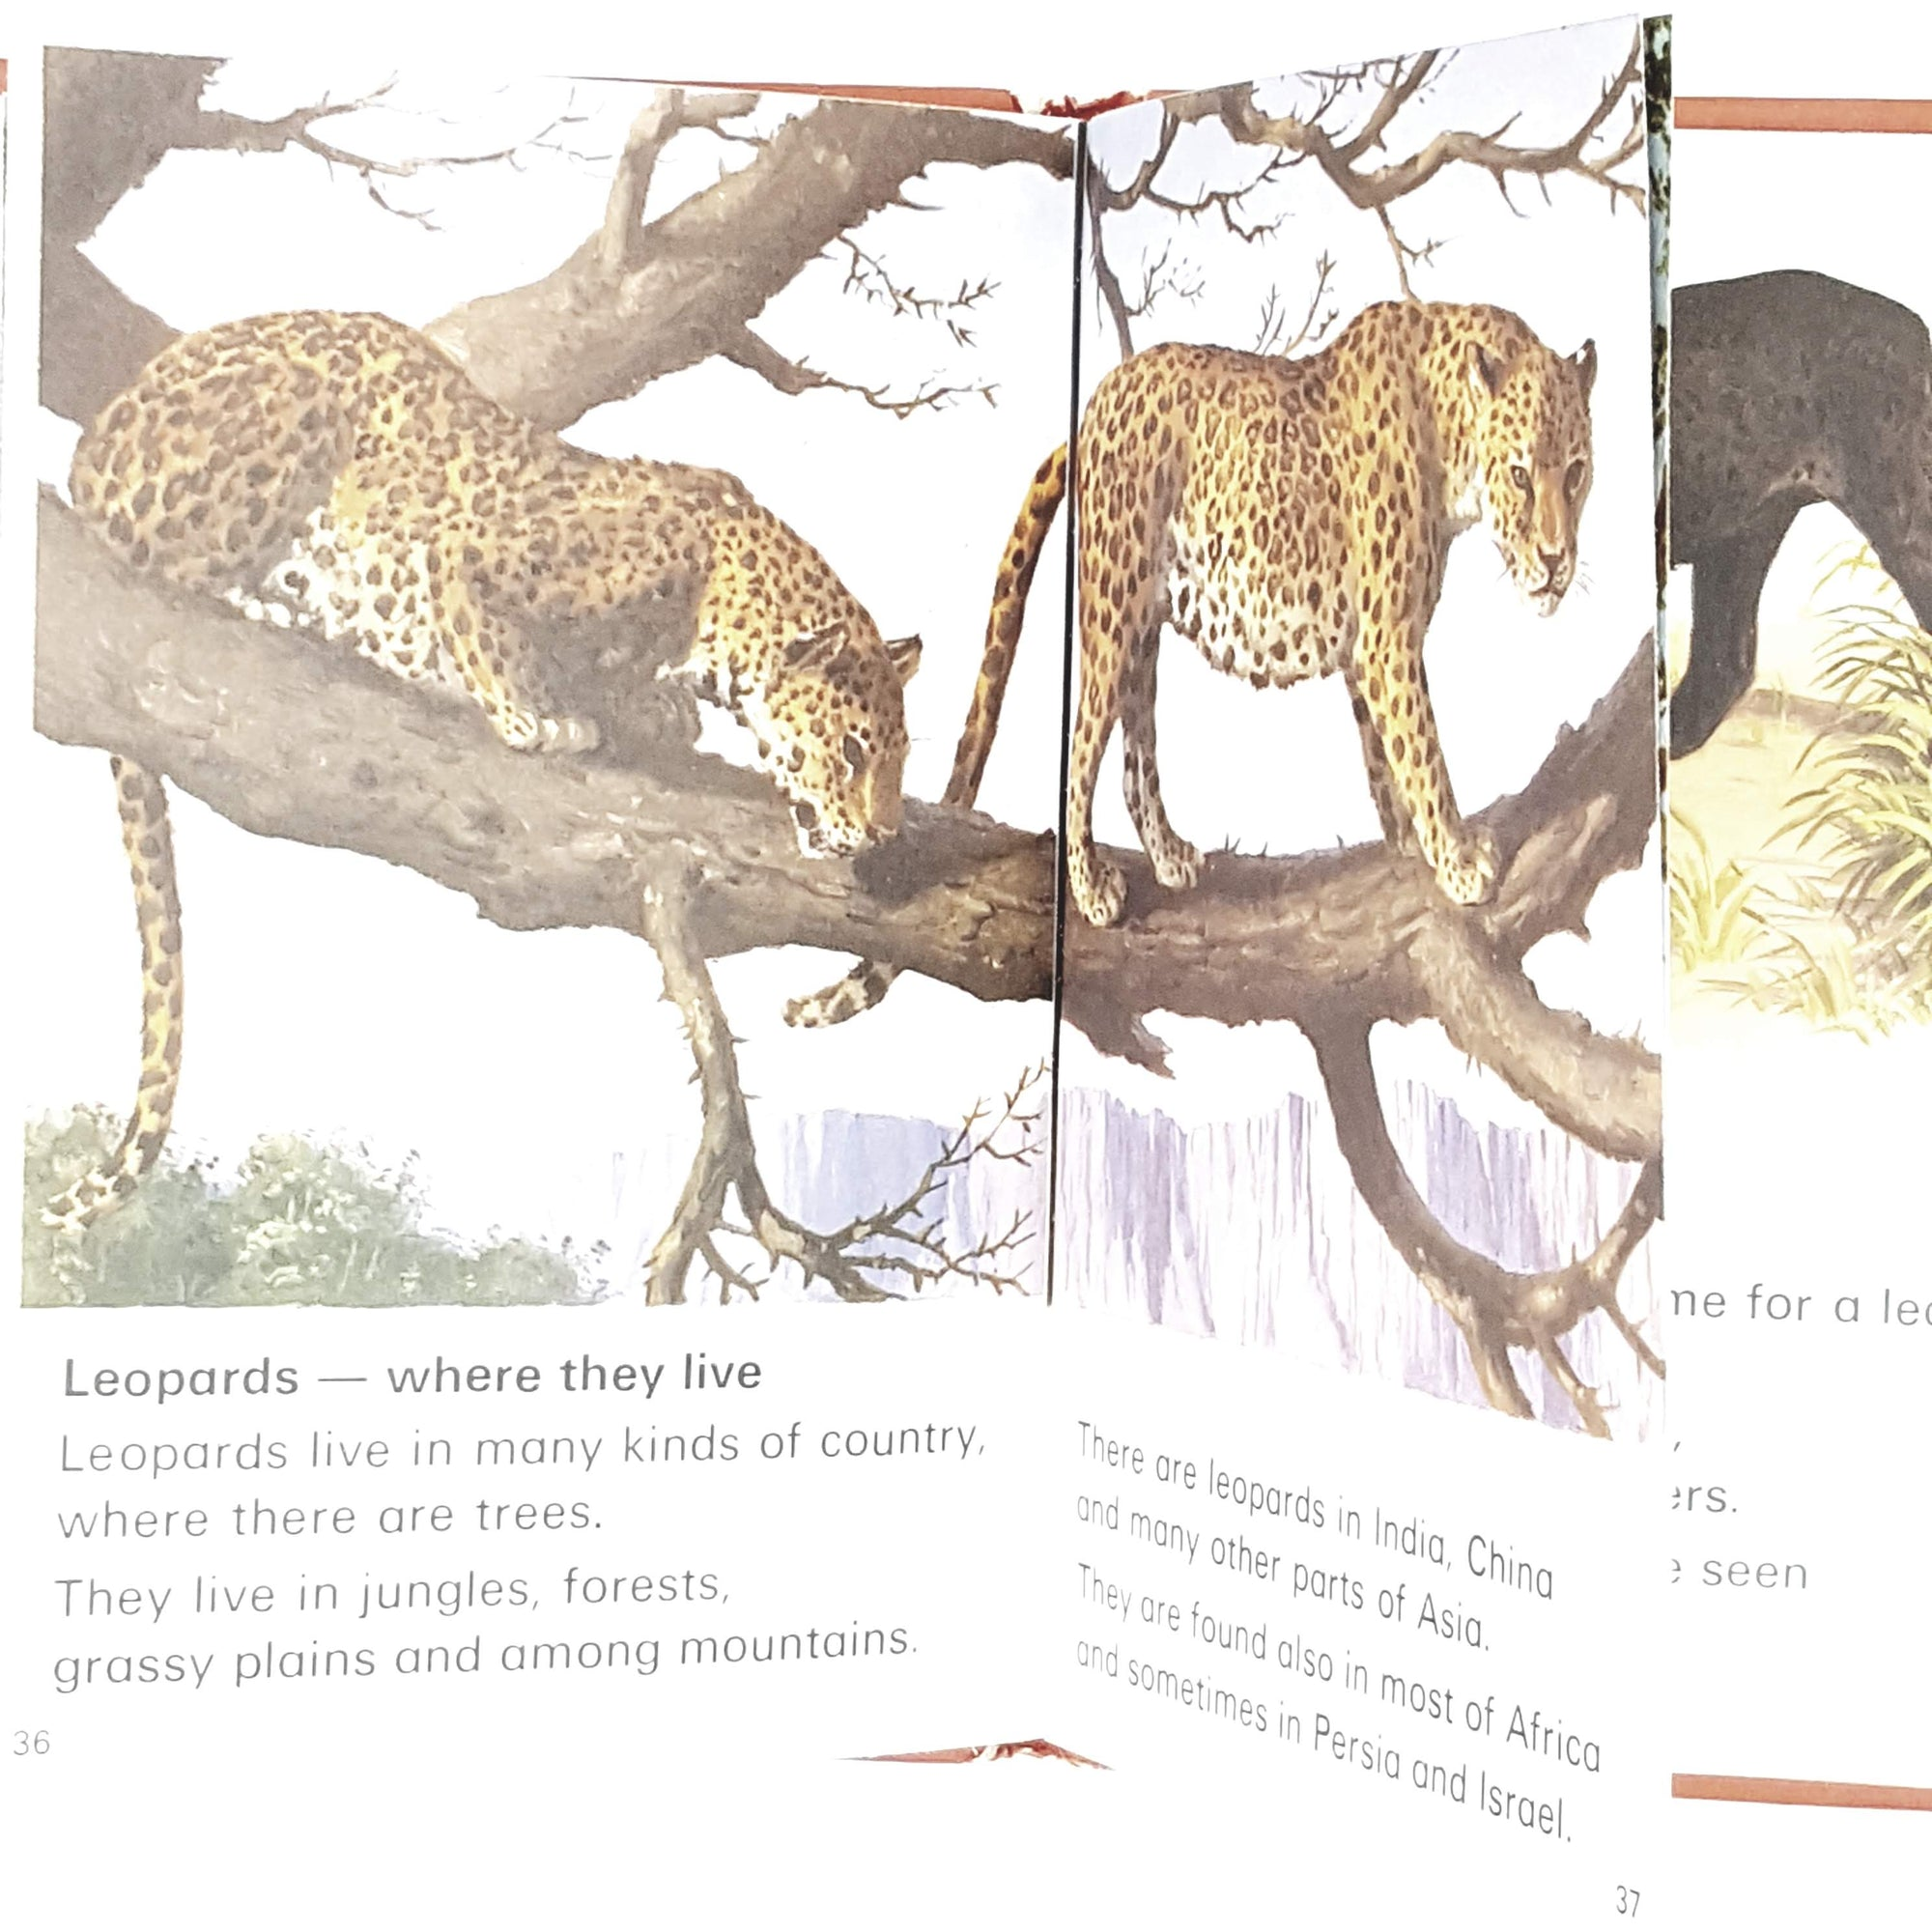 ladybird-leaders-lions-and-tigers-1974-country-house-library